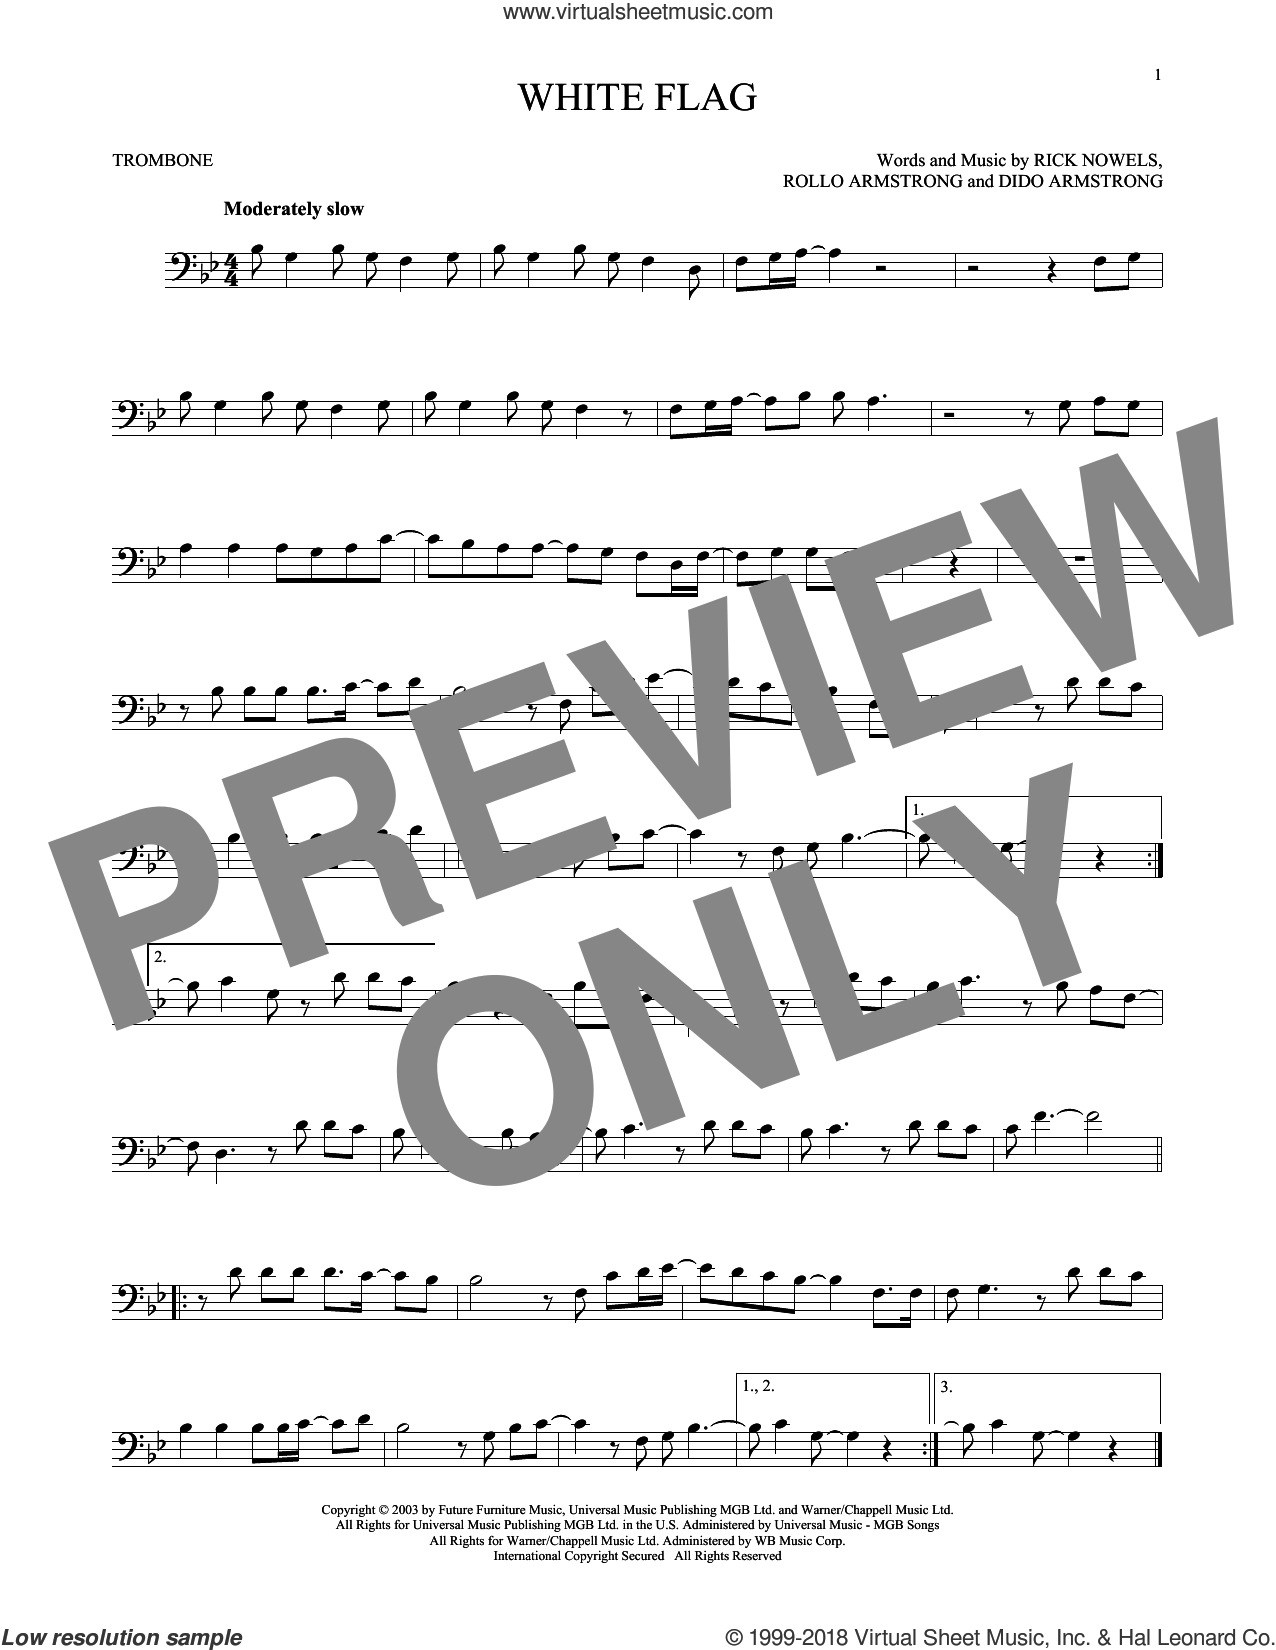 White Flag sheet music for trombone solo by Rollo Armstrong, Dido Armstrong and Rick Nowels. Score Image Preview.